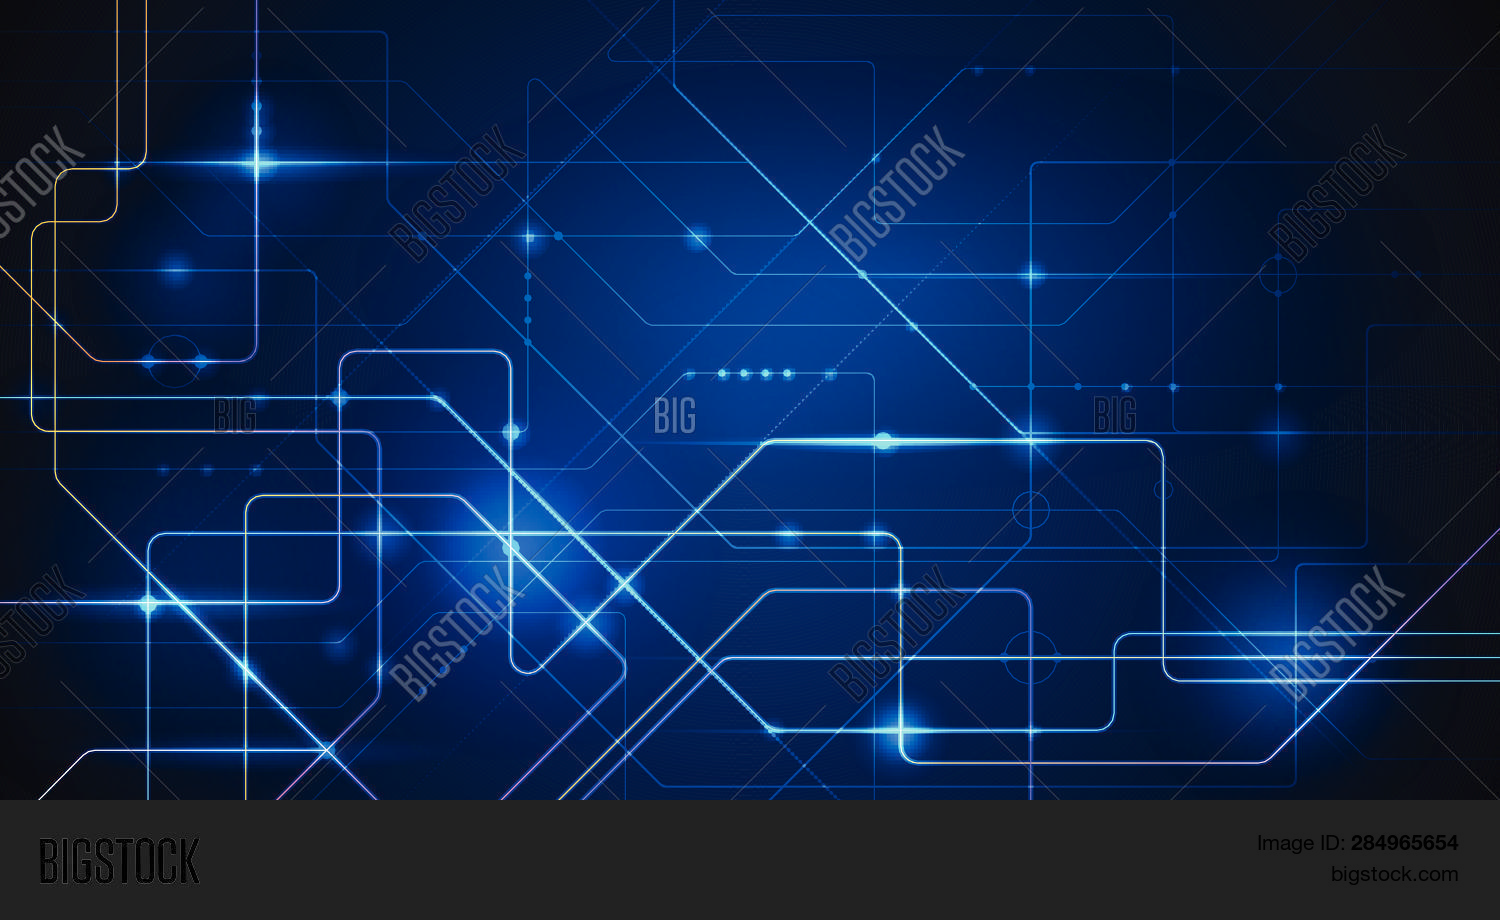 abstract,backdrop,background,blue,board,business,chip,circle,circuit,communication,computer,concept,connect,connection,cyber,cyberspace,data,design,digital,electric,electricity,electronic,energy,engineering,future,futuristic,graphic,hardware,high,illustration,information,innovation,integrated,internet,light,line,modern,motherboard,network,pattern,science,space,speed,system,tech,technology,texture,vector,wallpaper,web